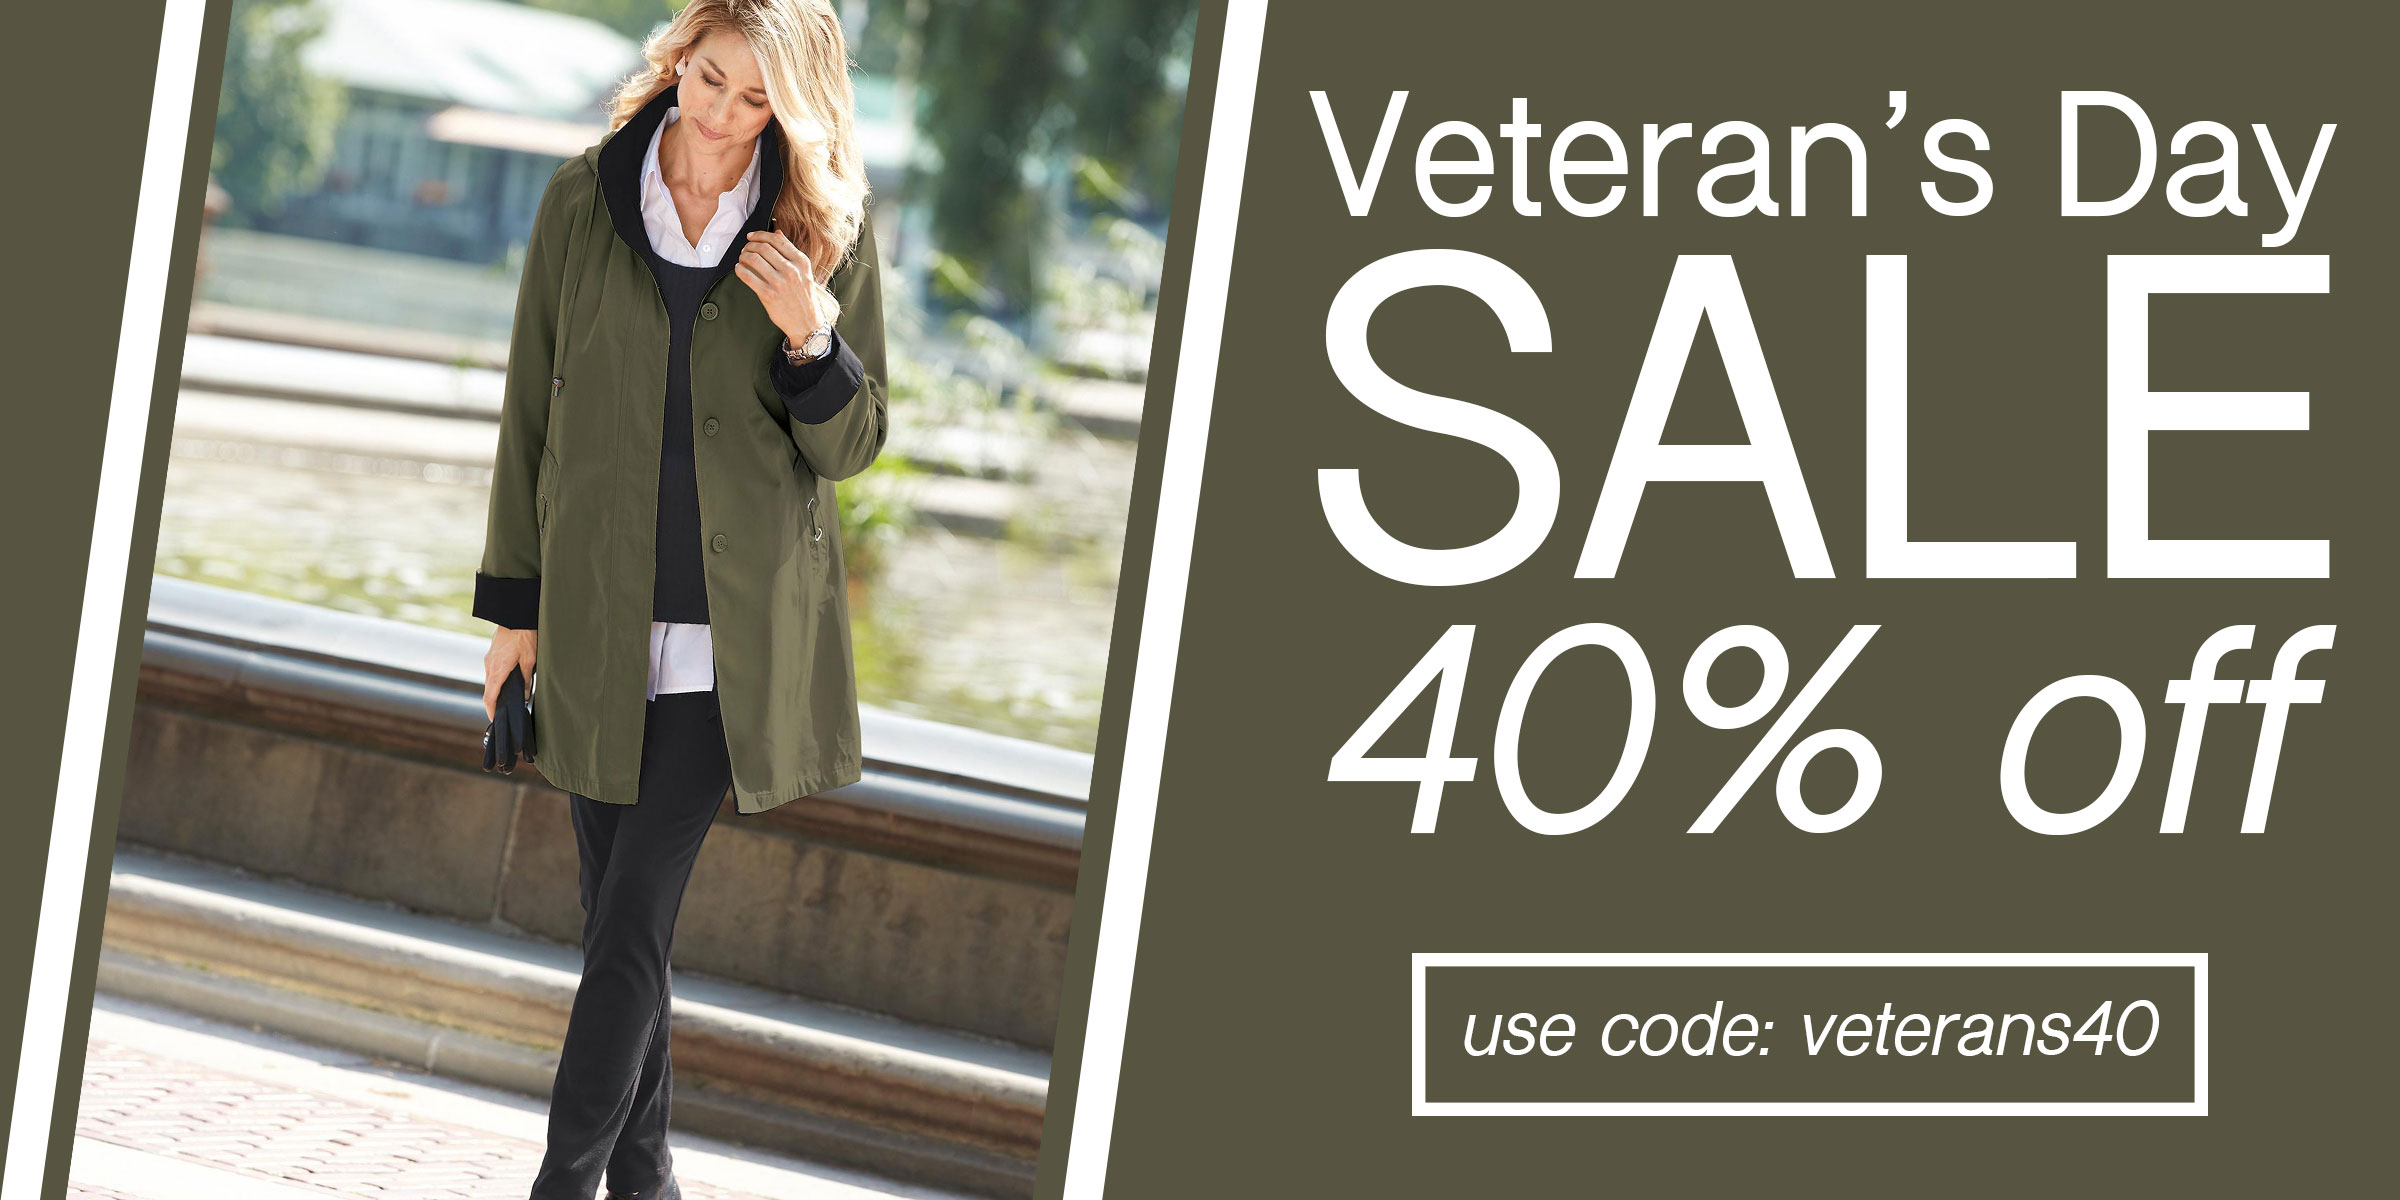 metrostyle.com - Veteran's Day Sale 40% off